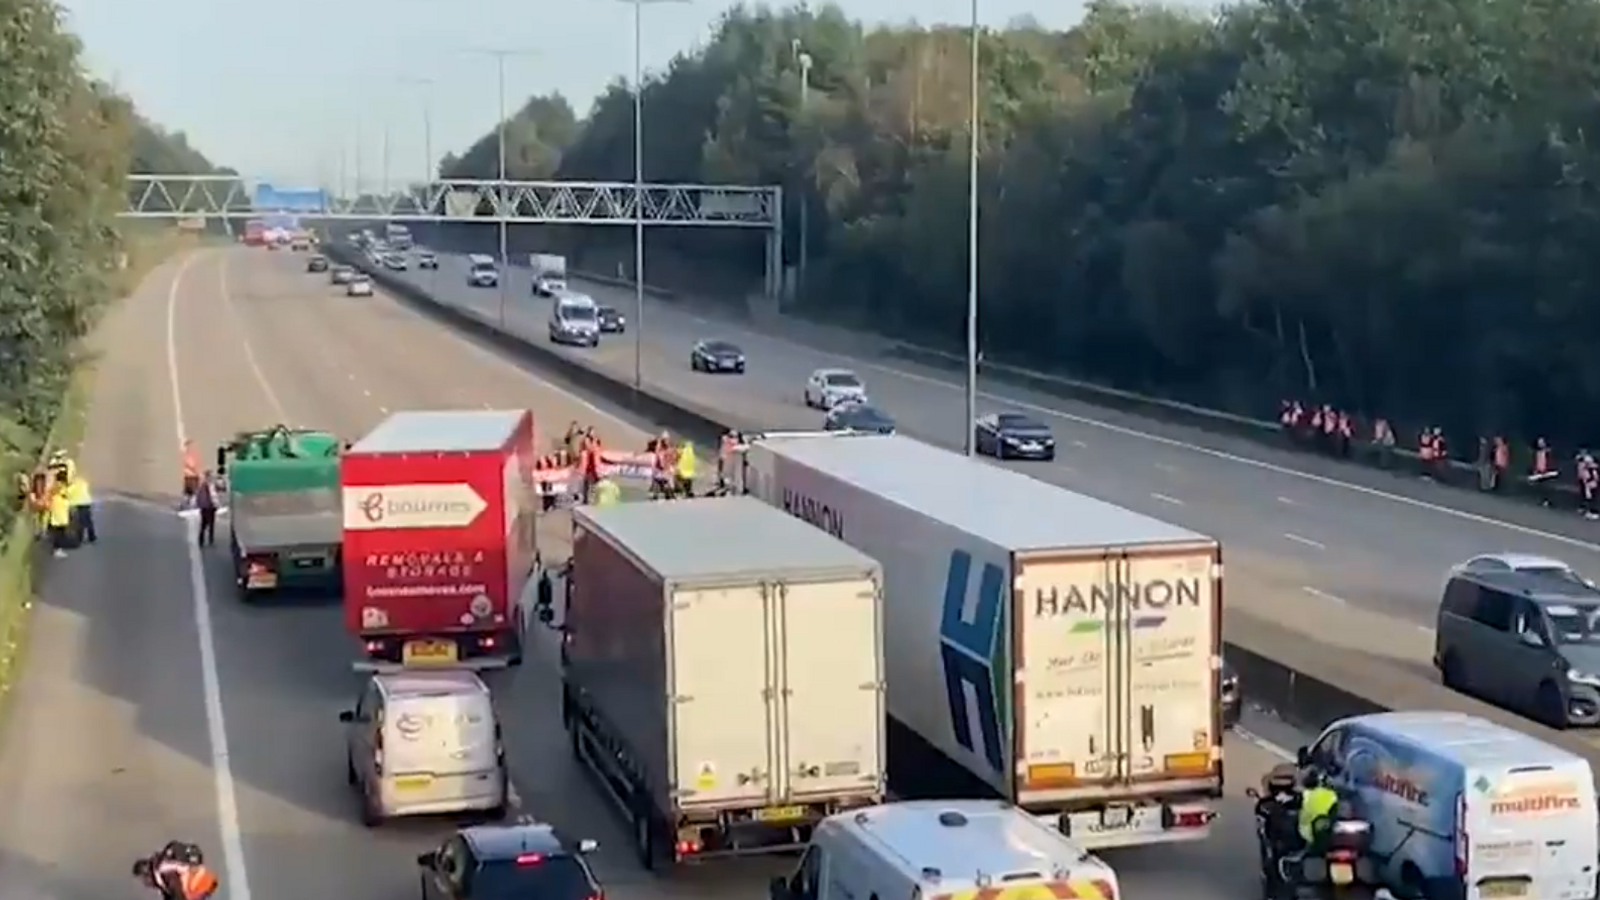 M25 traffic: Twenty-three arrested after Insulate Britain protesters try to block motorway for fifth time